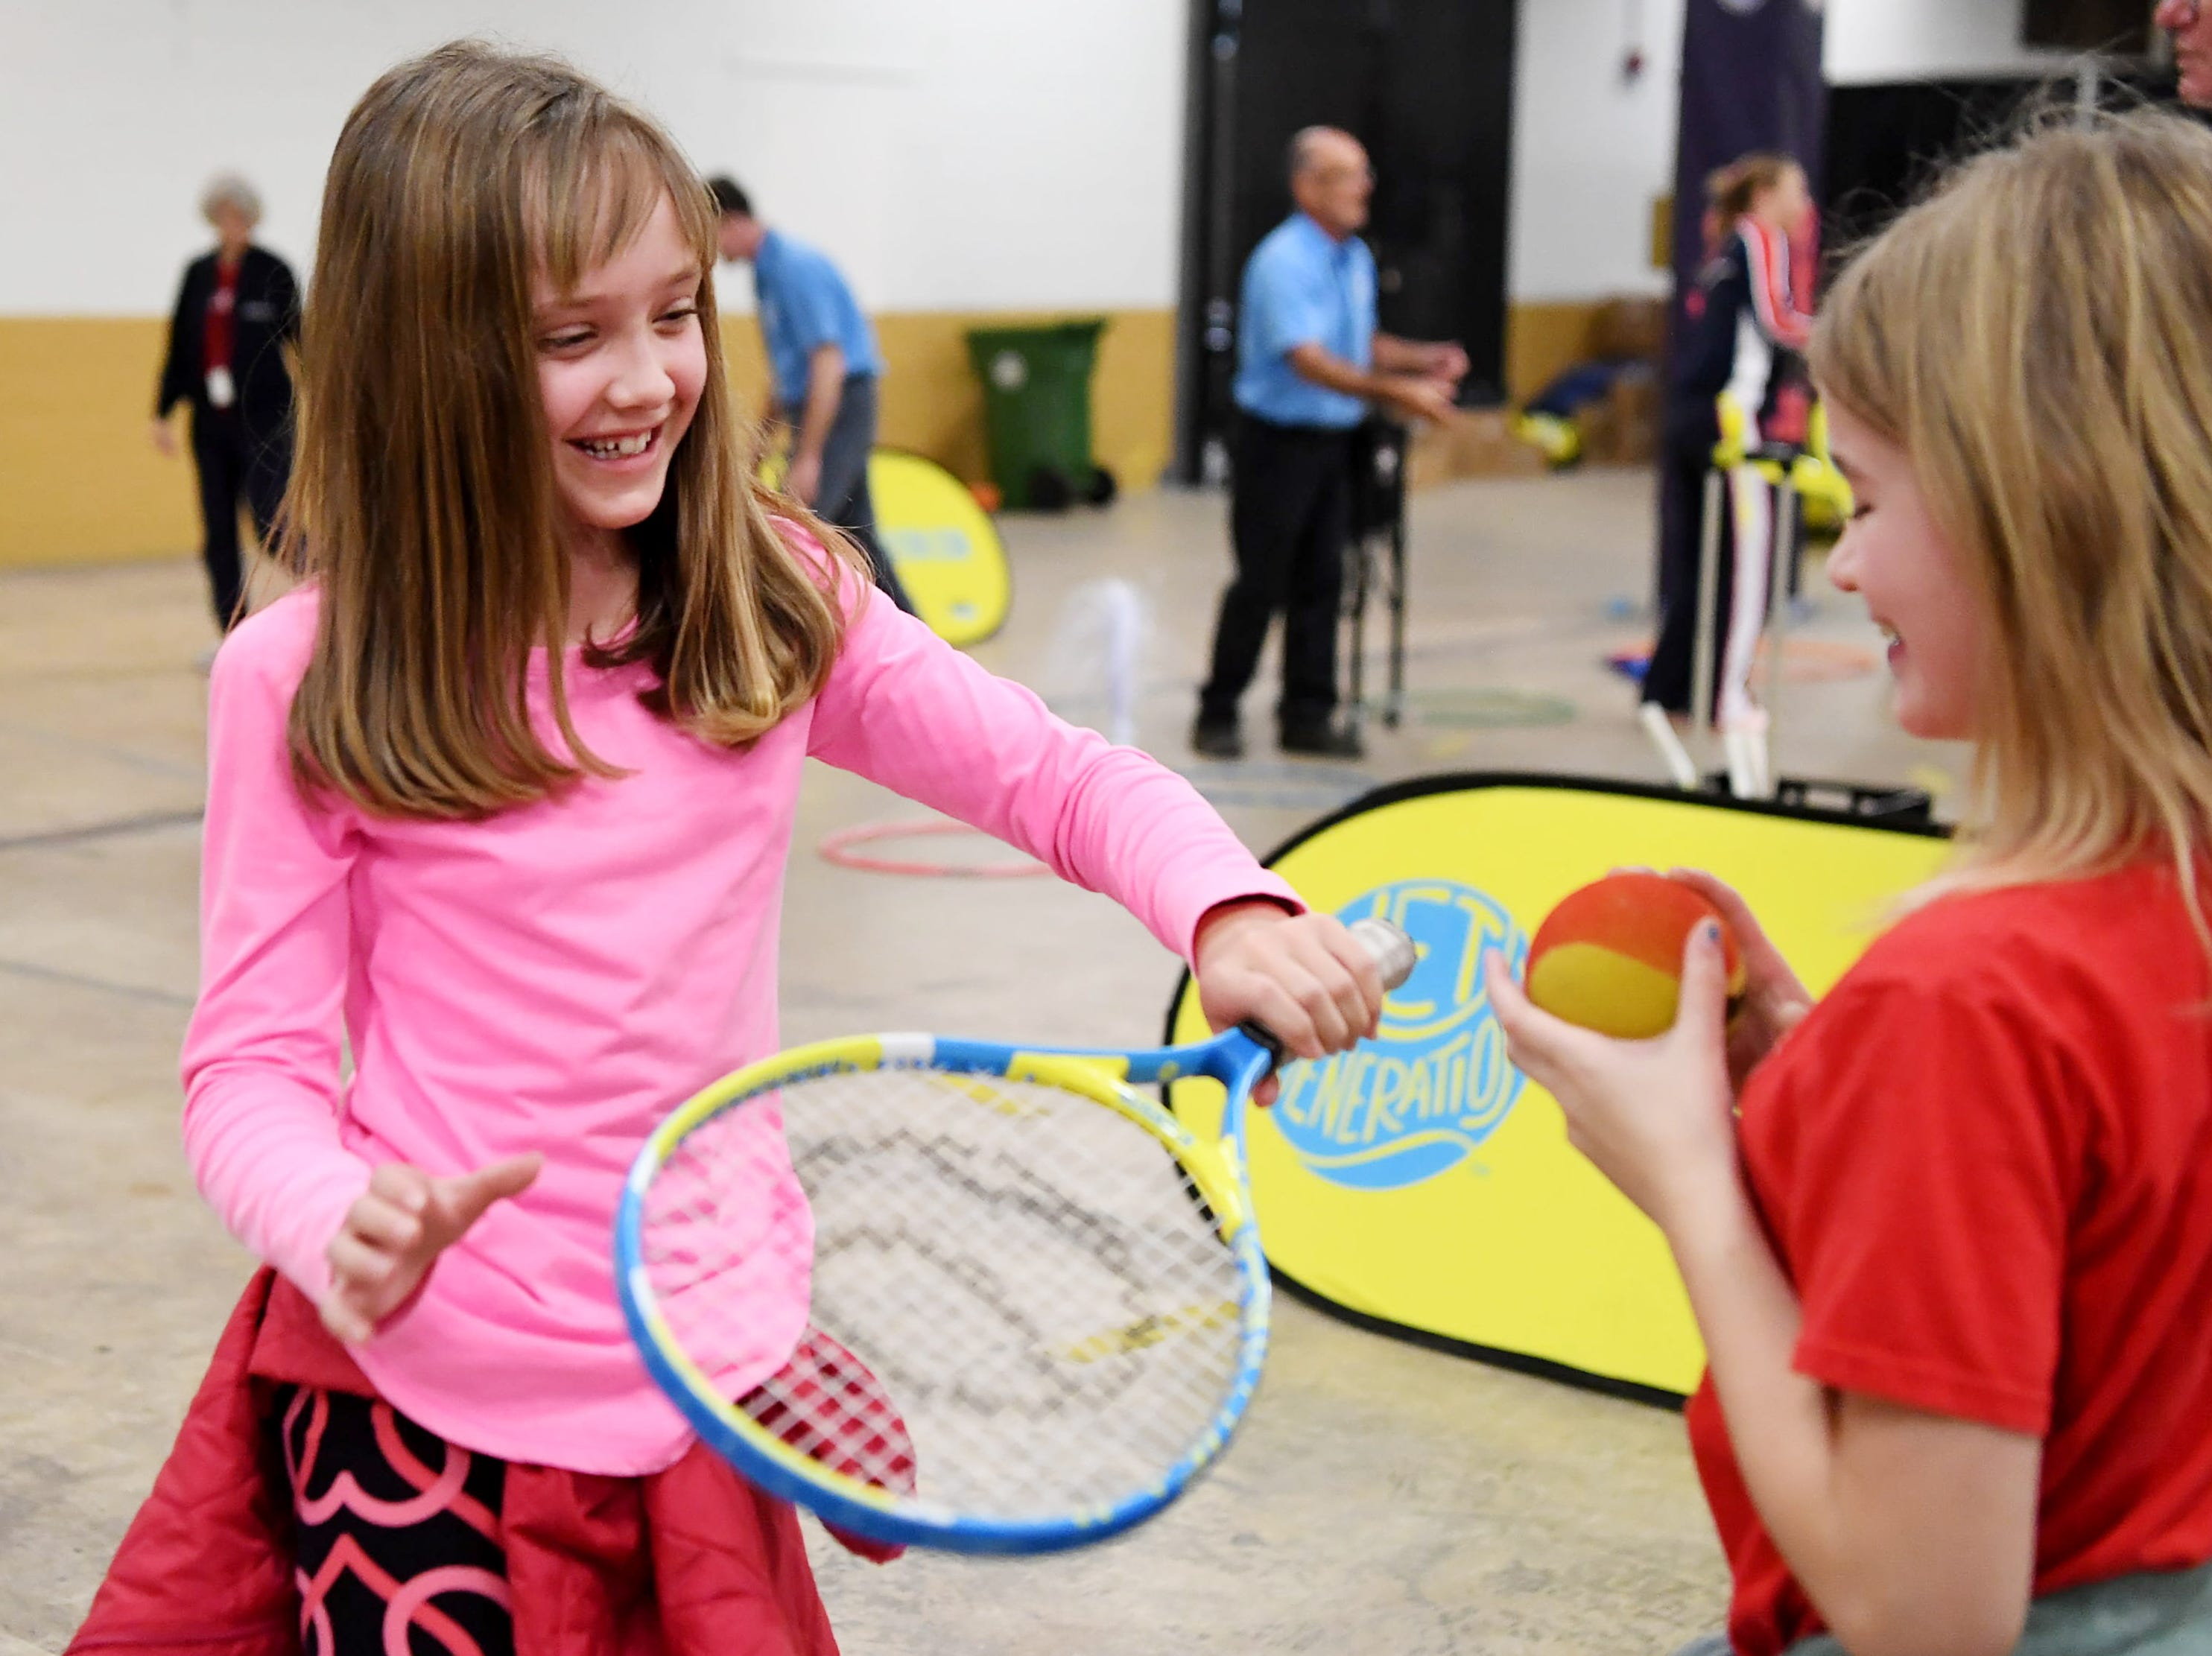 More than 200 Buncombe County elementary students learned tennis skills from volunteers with the United States Tennis Association, USTA North Carolina and US Captain Kathy Rinaldi at the US Cellular Center Wednesday, Feb. 6, 2019.